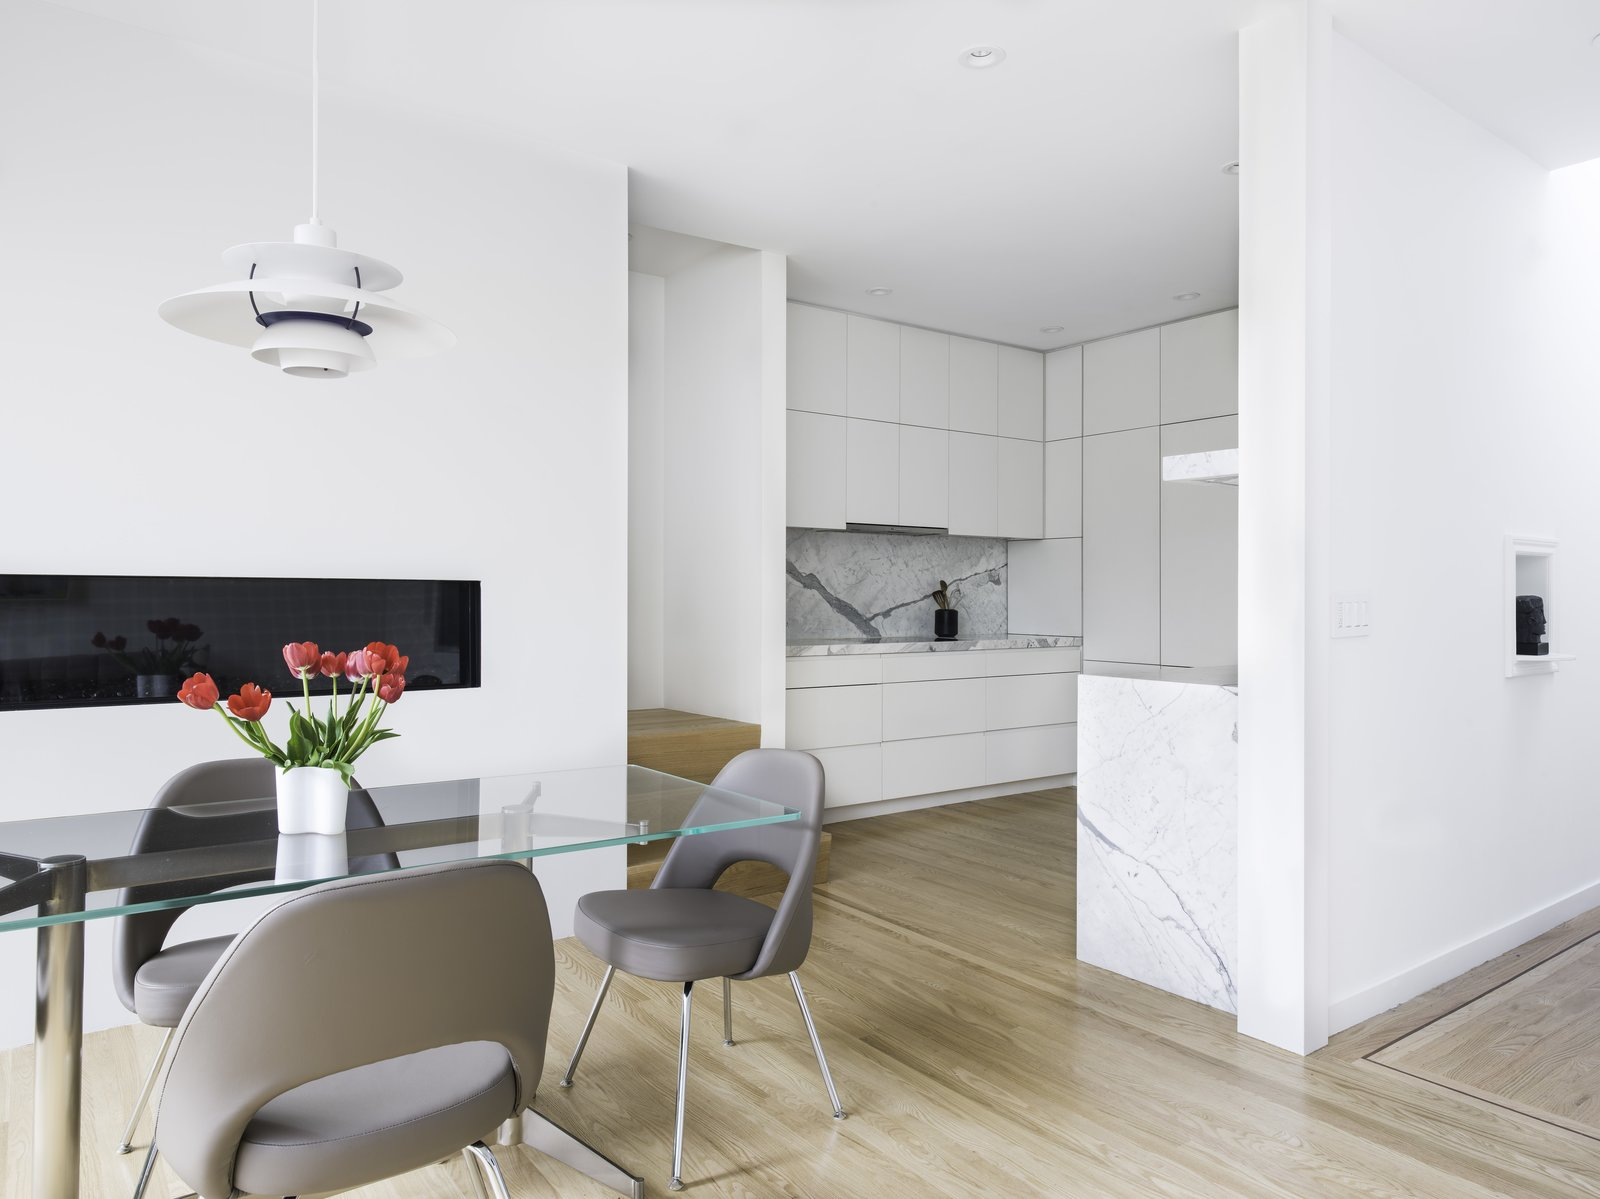 View of the Kitchen from the Dining Room.  Telegraph Hill Periscope by Samaha+Hart Architecture